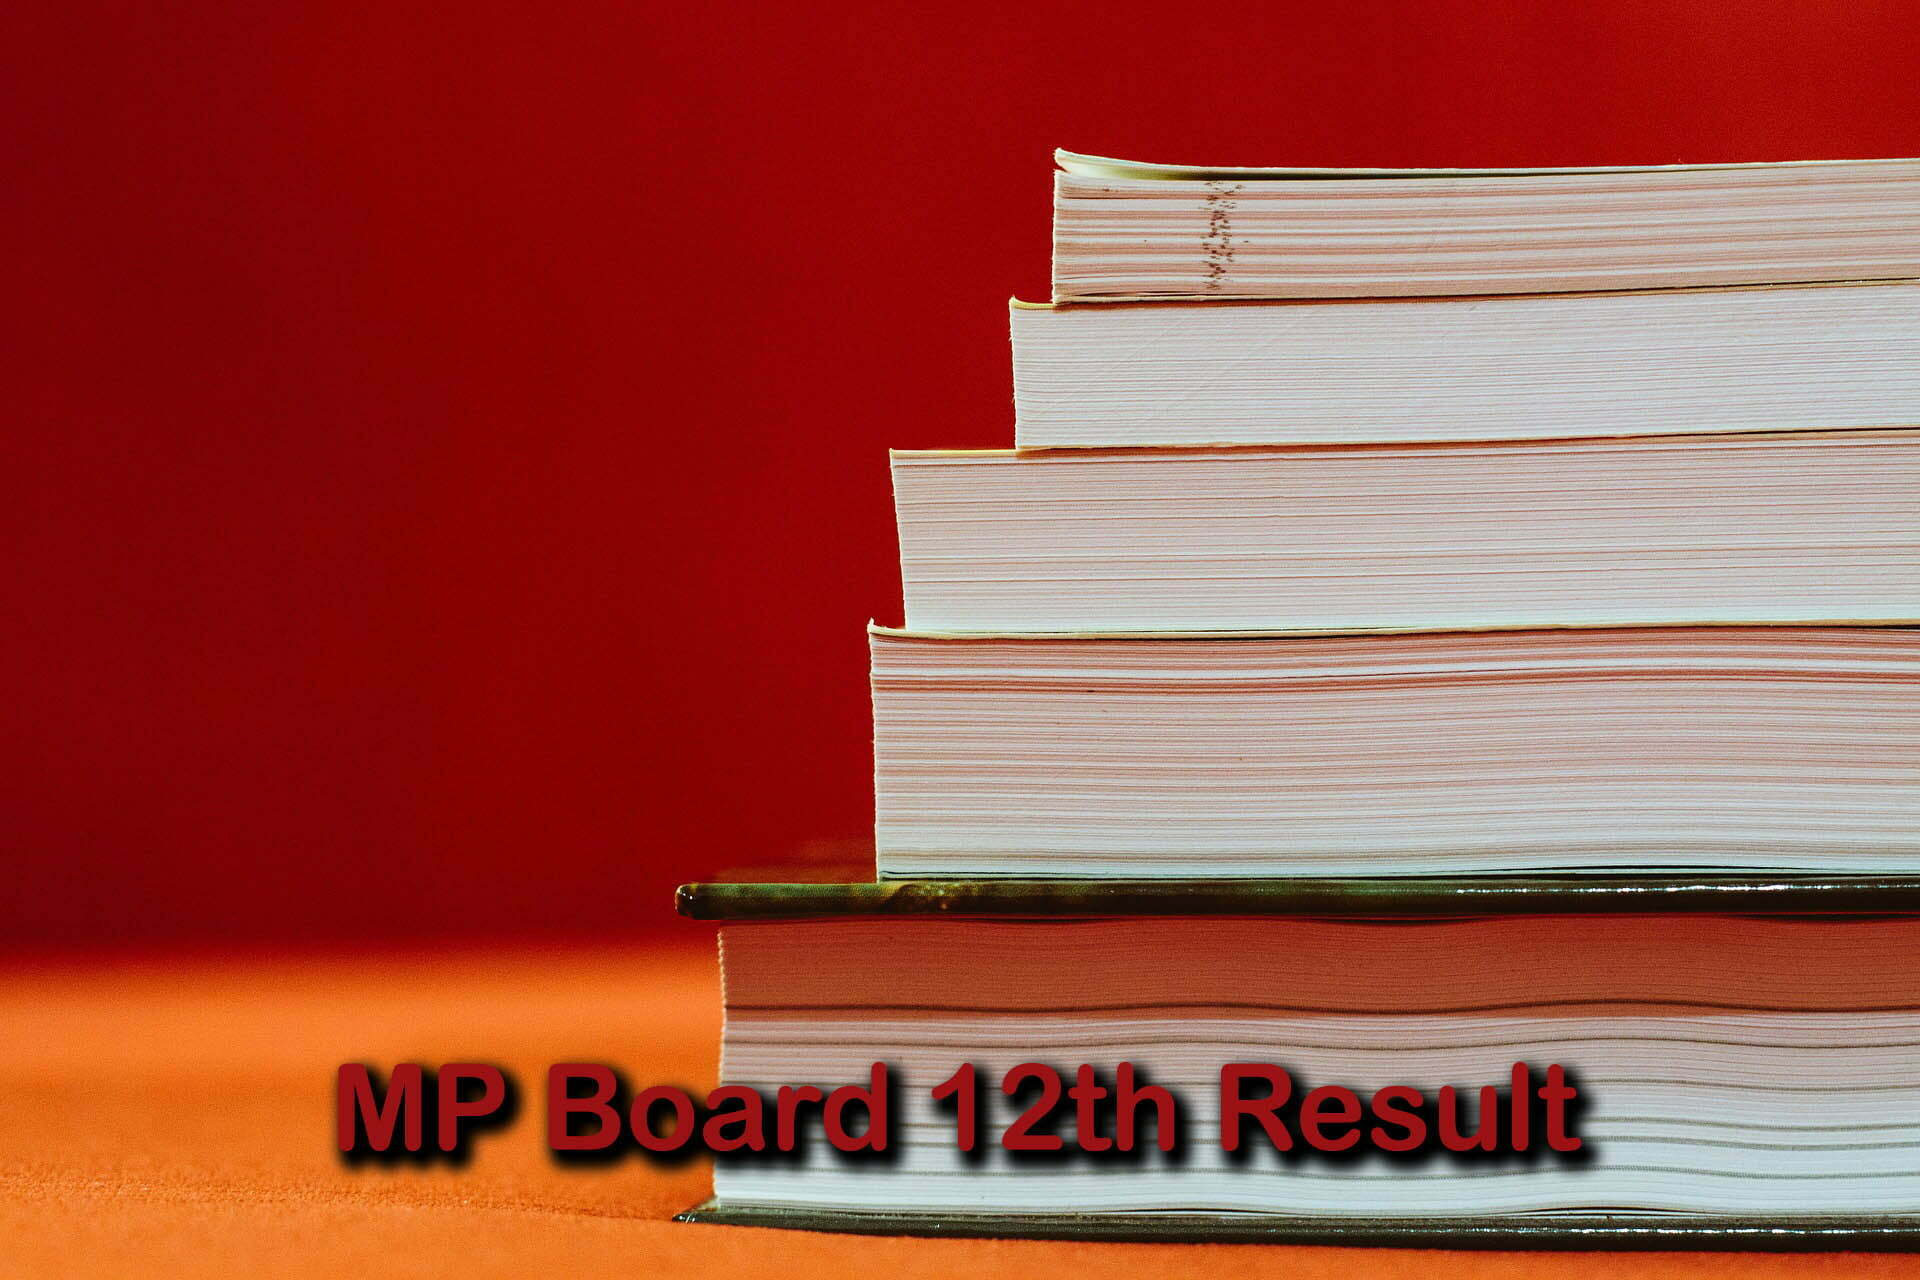 MP Board 12th Result 2020 : Madhya Pradesh Board 12th Result @ mpbse.nic.in